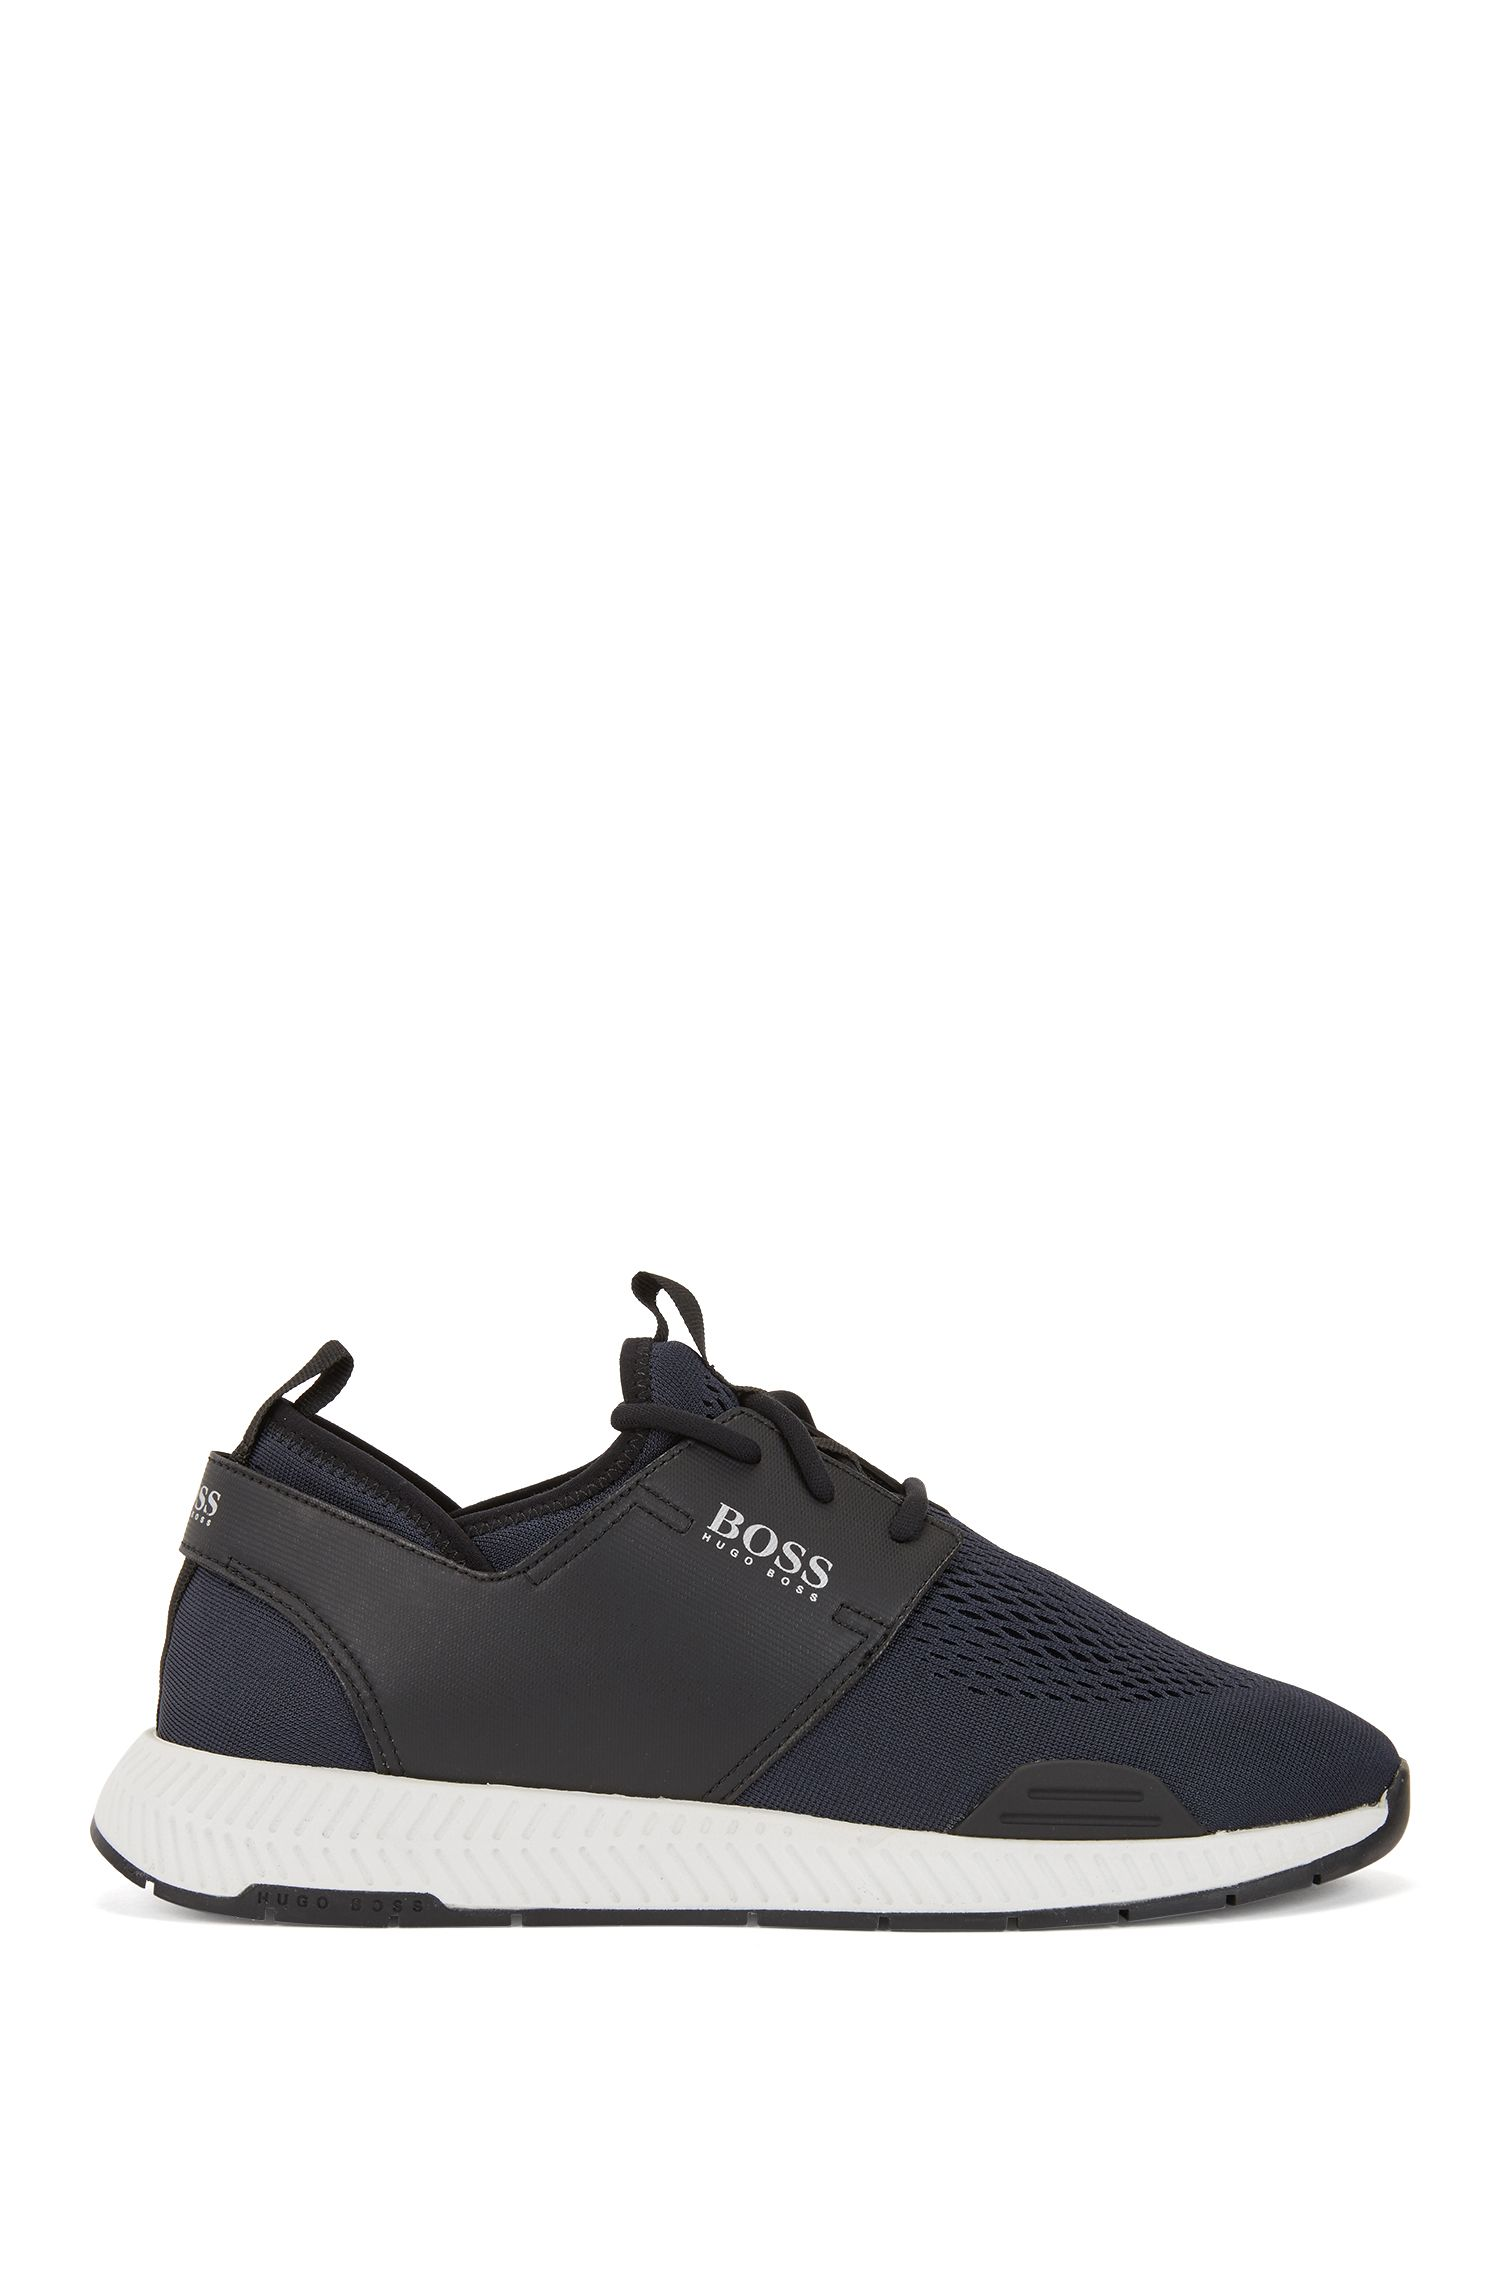 Running-inspired sneakers with mesh uppers, Dark Blue